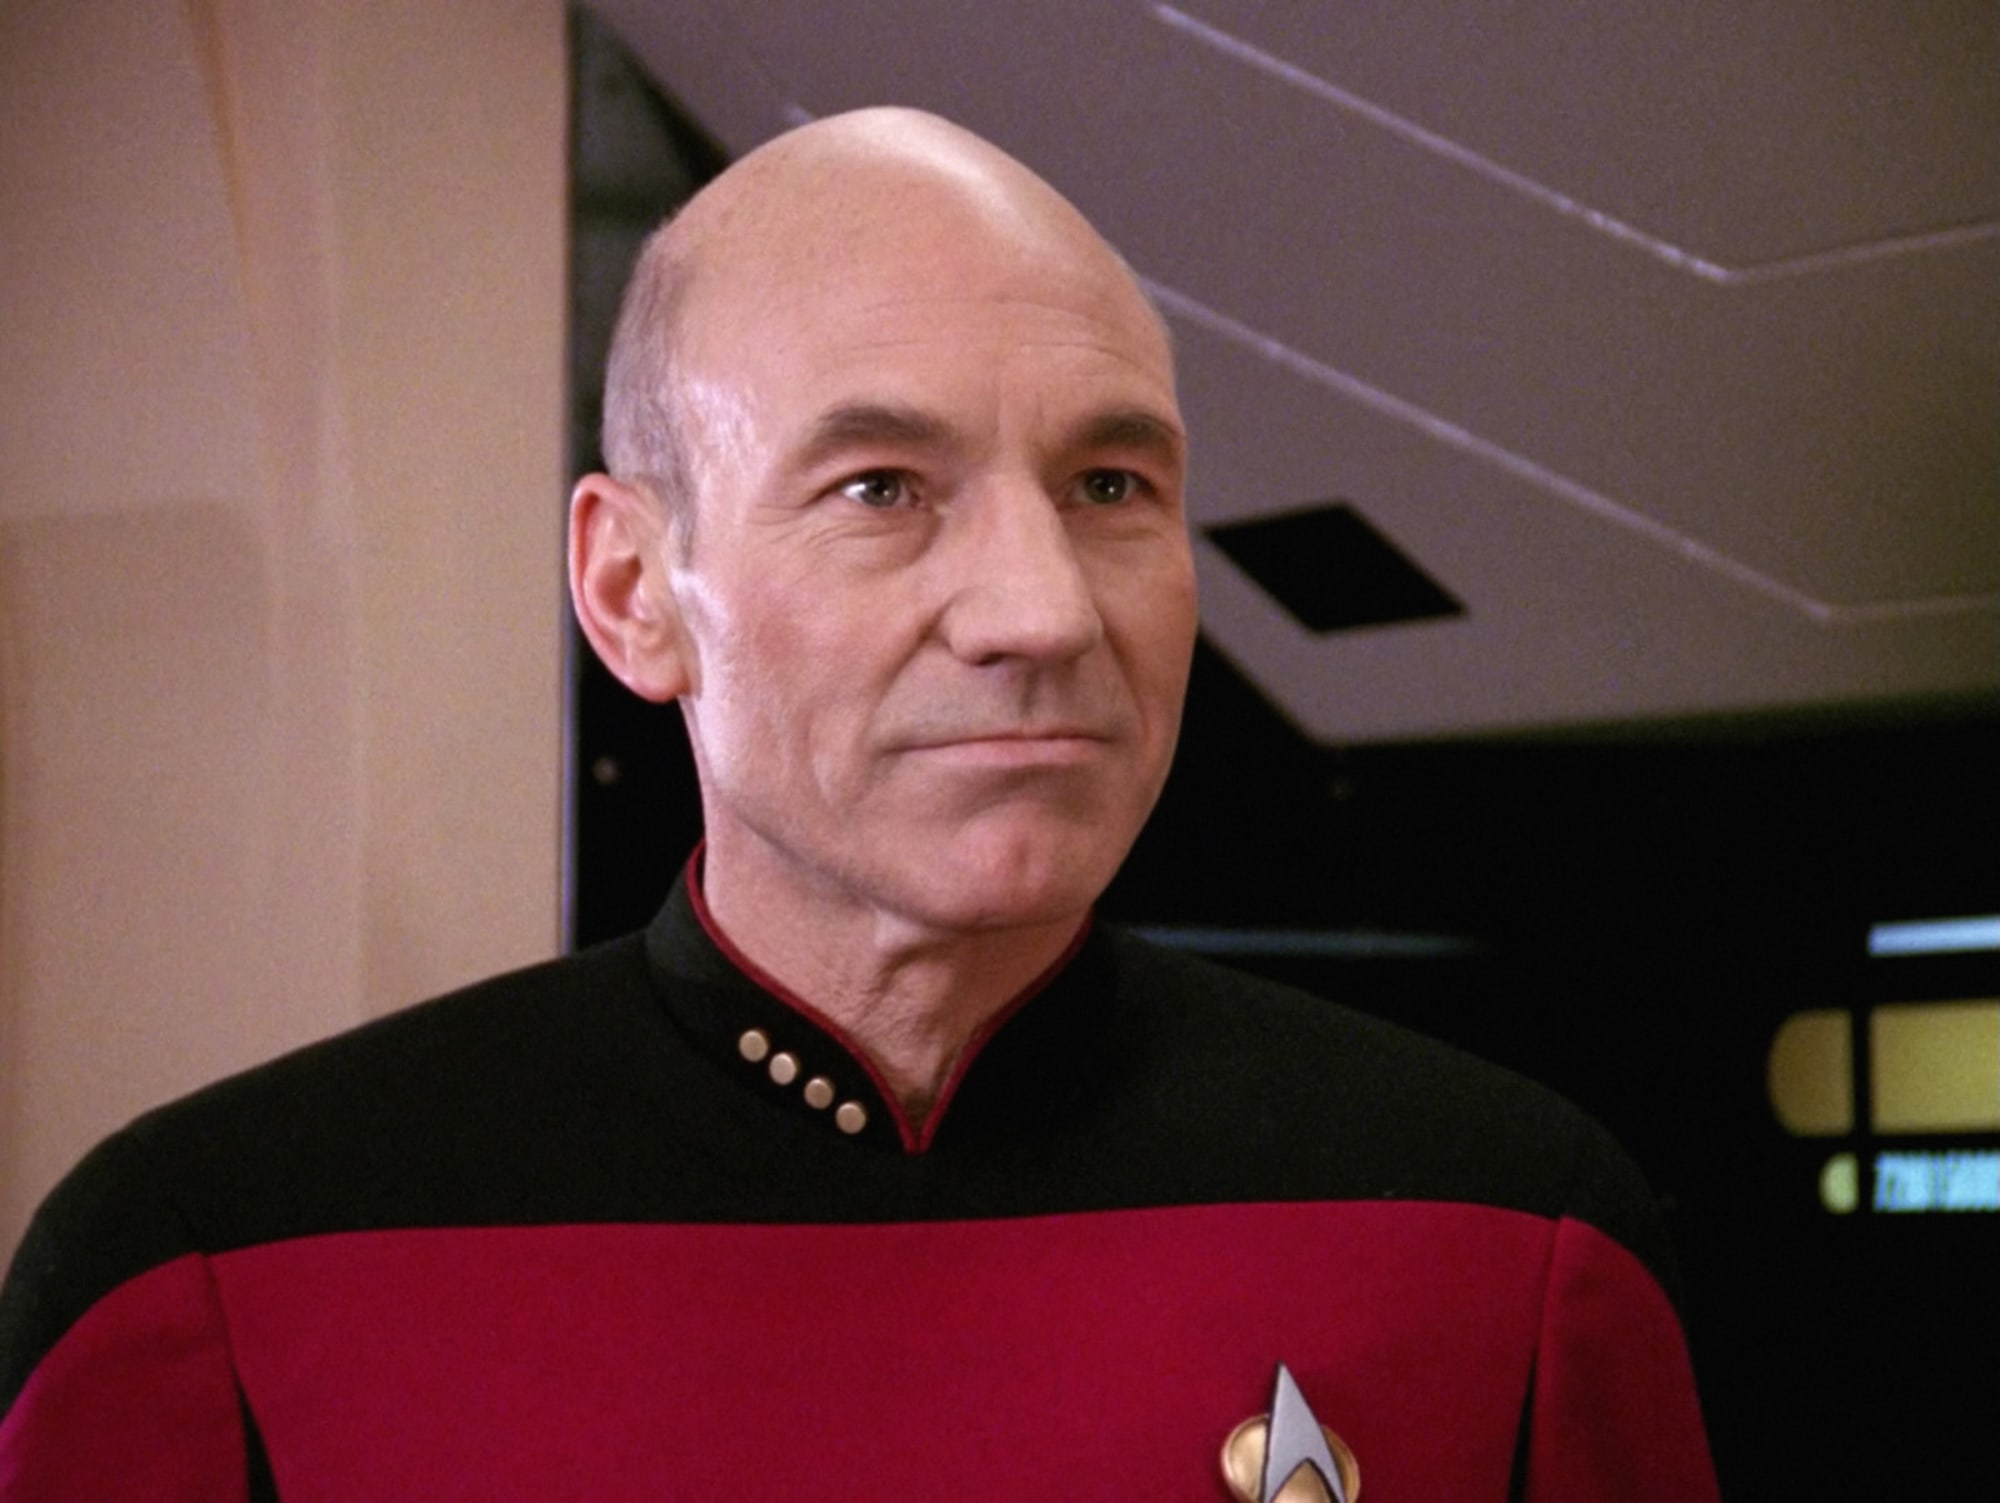 Photo: When Patrick Stewart wore a wig for his Star Trek audition